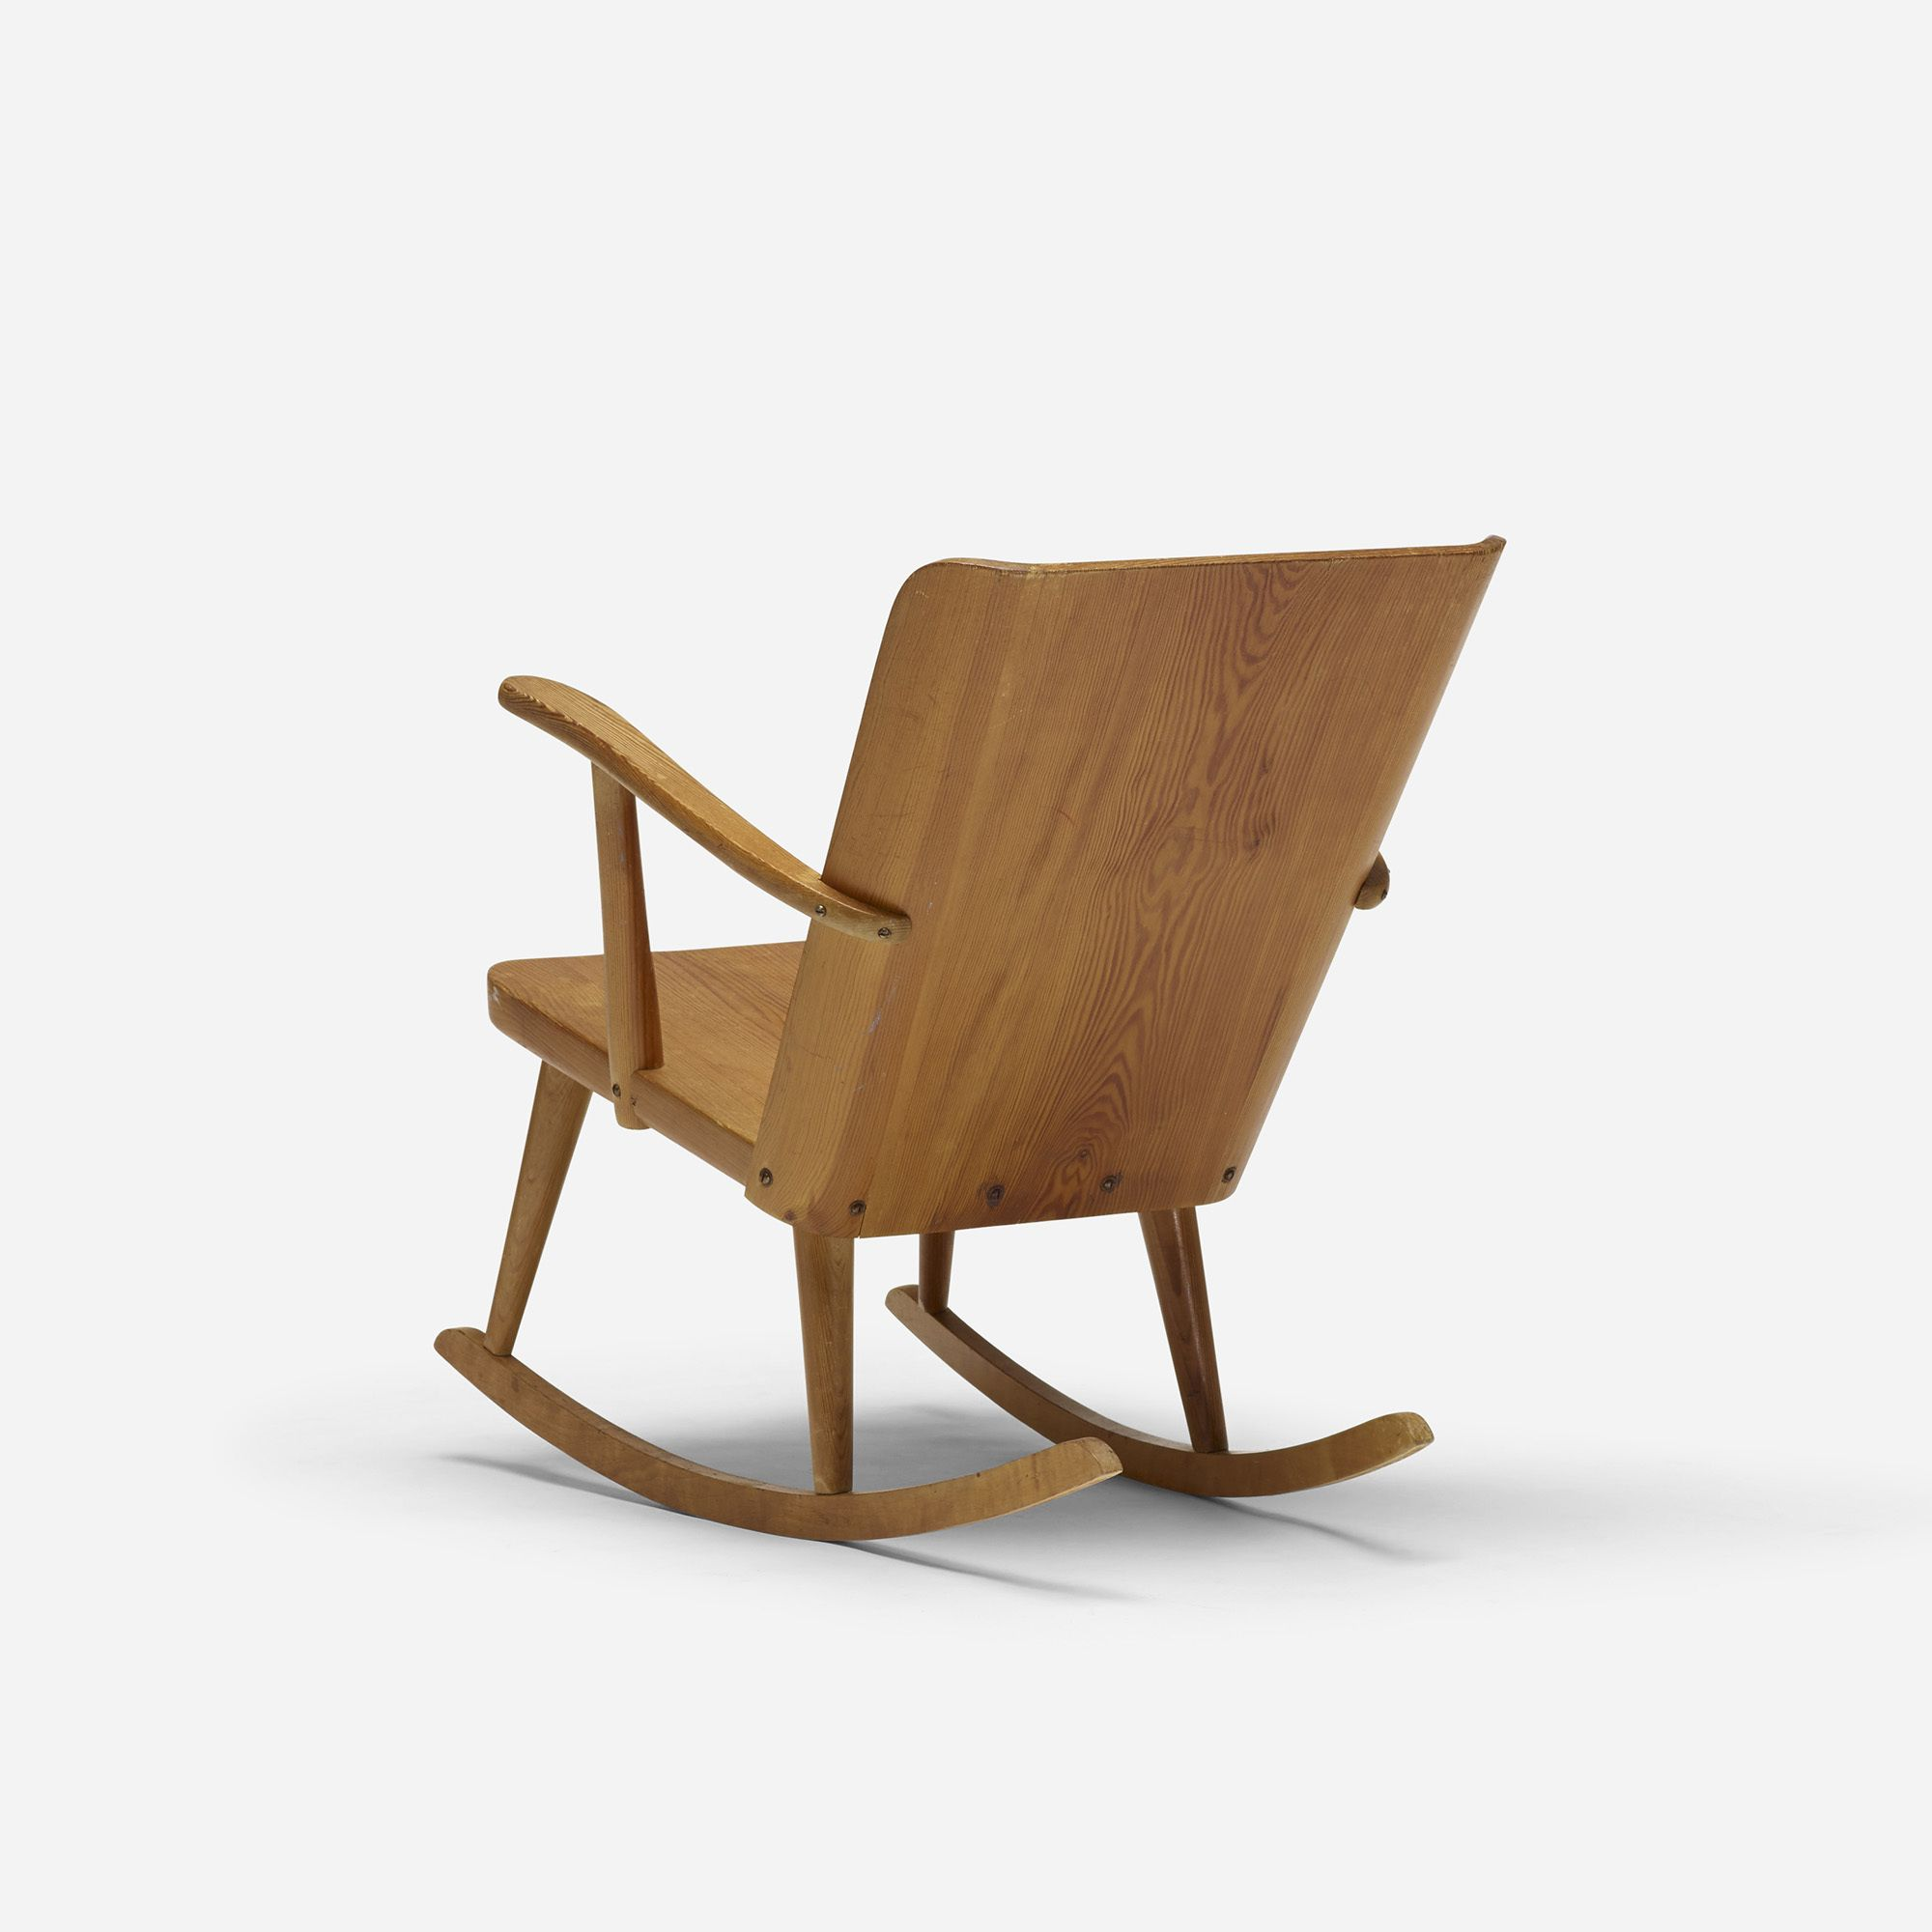 Swell For Sale On Wright Now Carl Malmsten Rocking Chair Machost Co Dining Chair Design Ideas Machostcouk